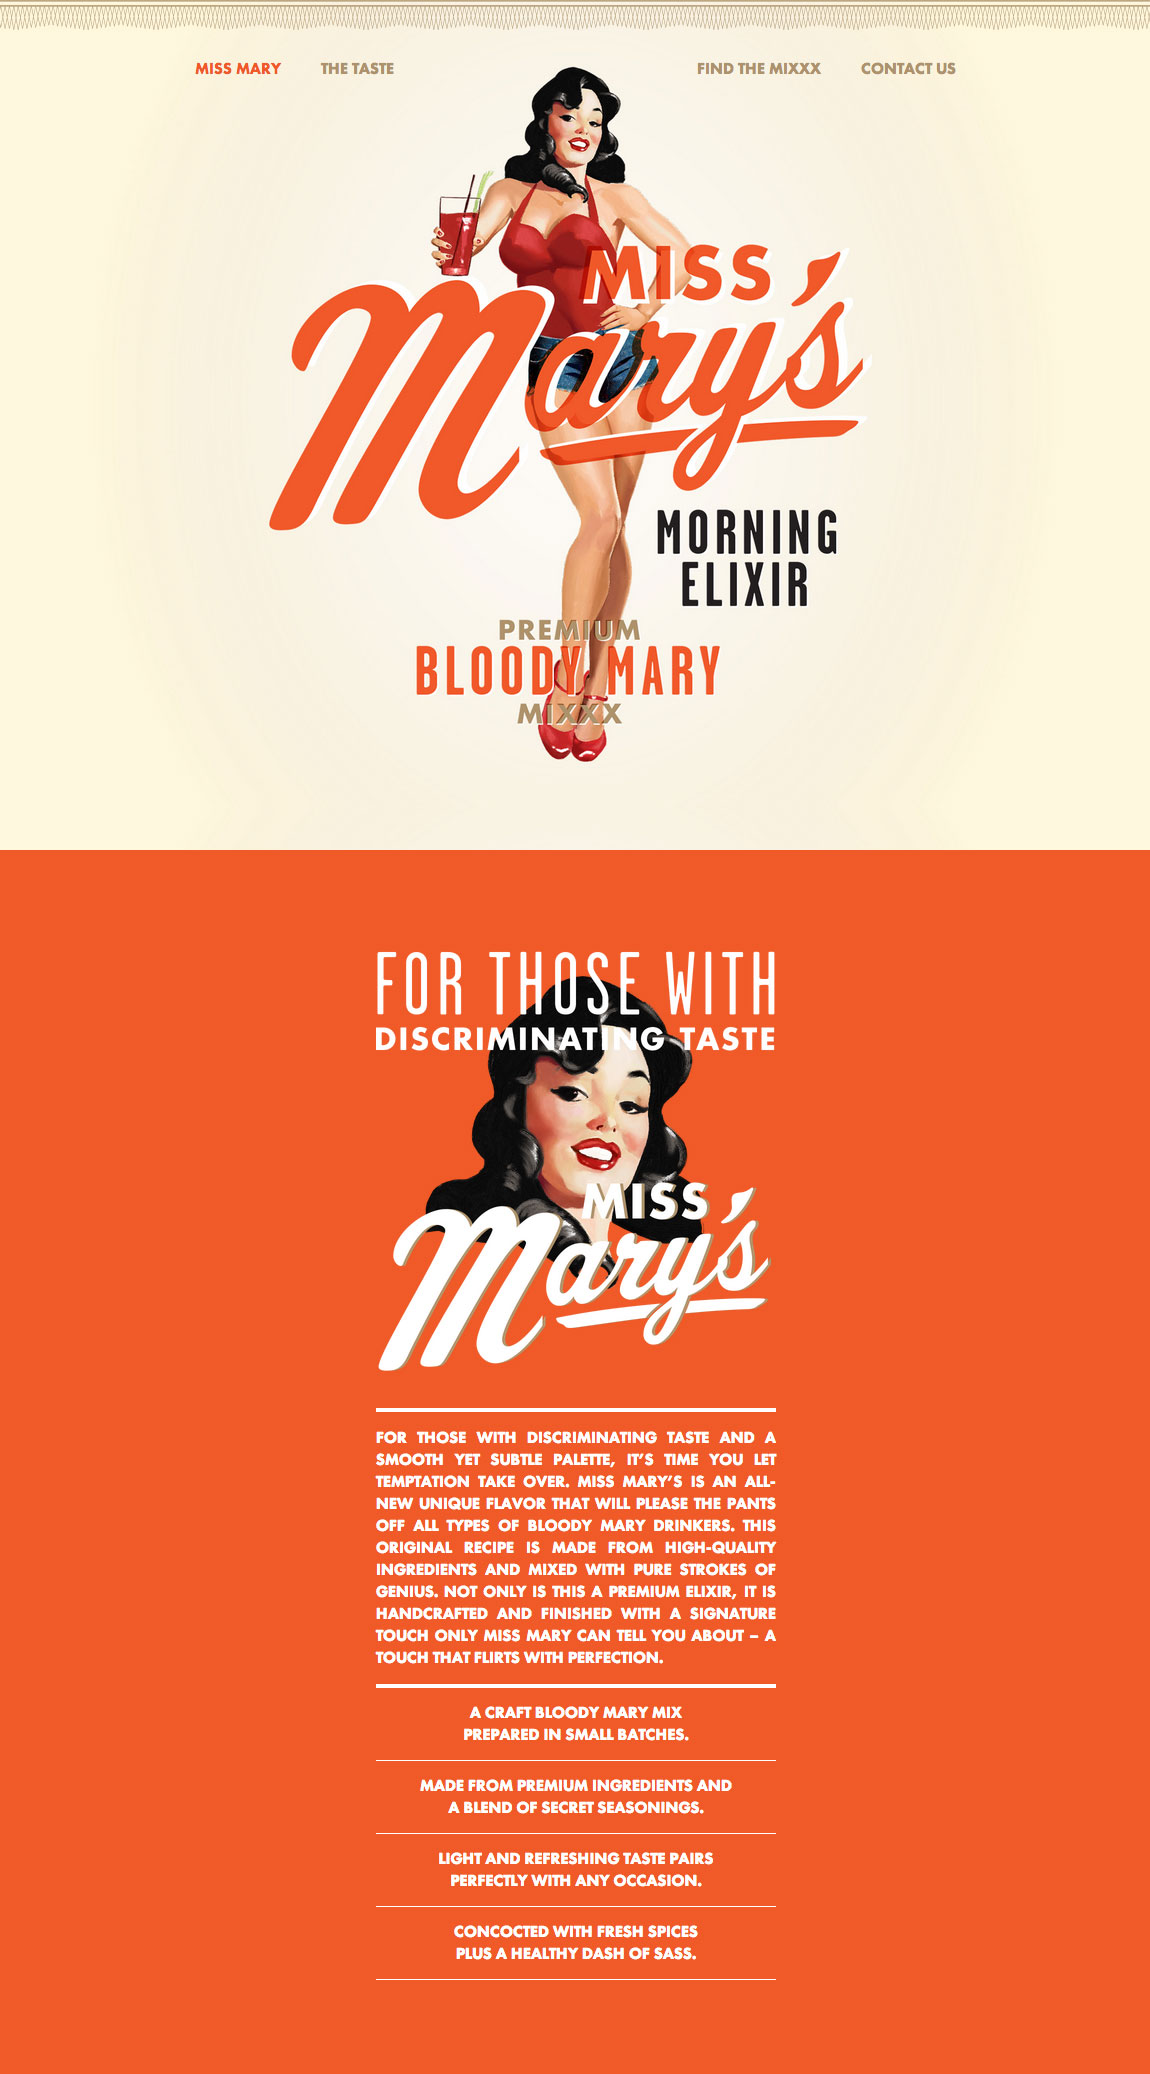 Miss Mary's Morning Elixir Website Screenshot